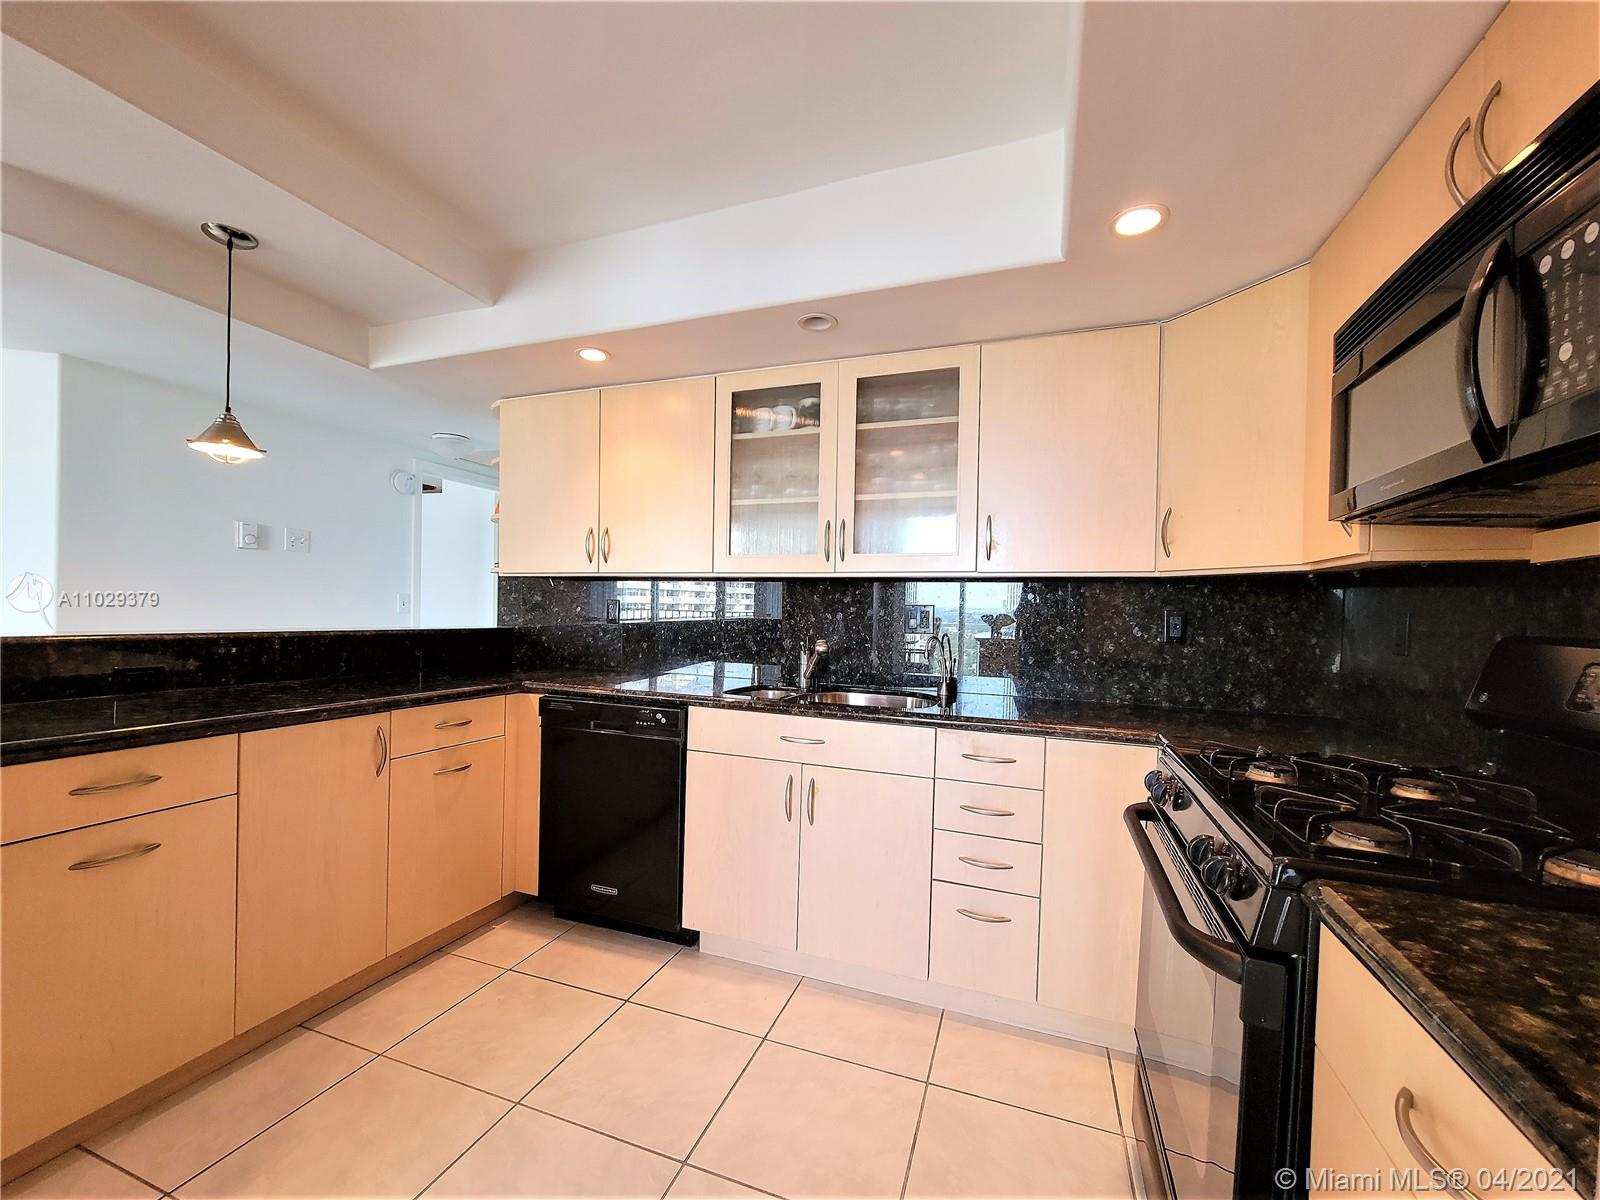 Photo of 2030 Ocean Dr #2026, Hallandale Beach, Florida, 33009 - Totally Remodeled, Granite coounter Tops, Open Kitchen Recessed Lighting, Smooth Ceilings and Walls.  Freshly Painted.